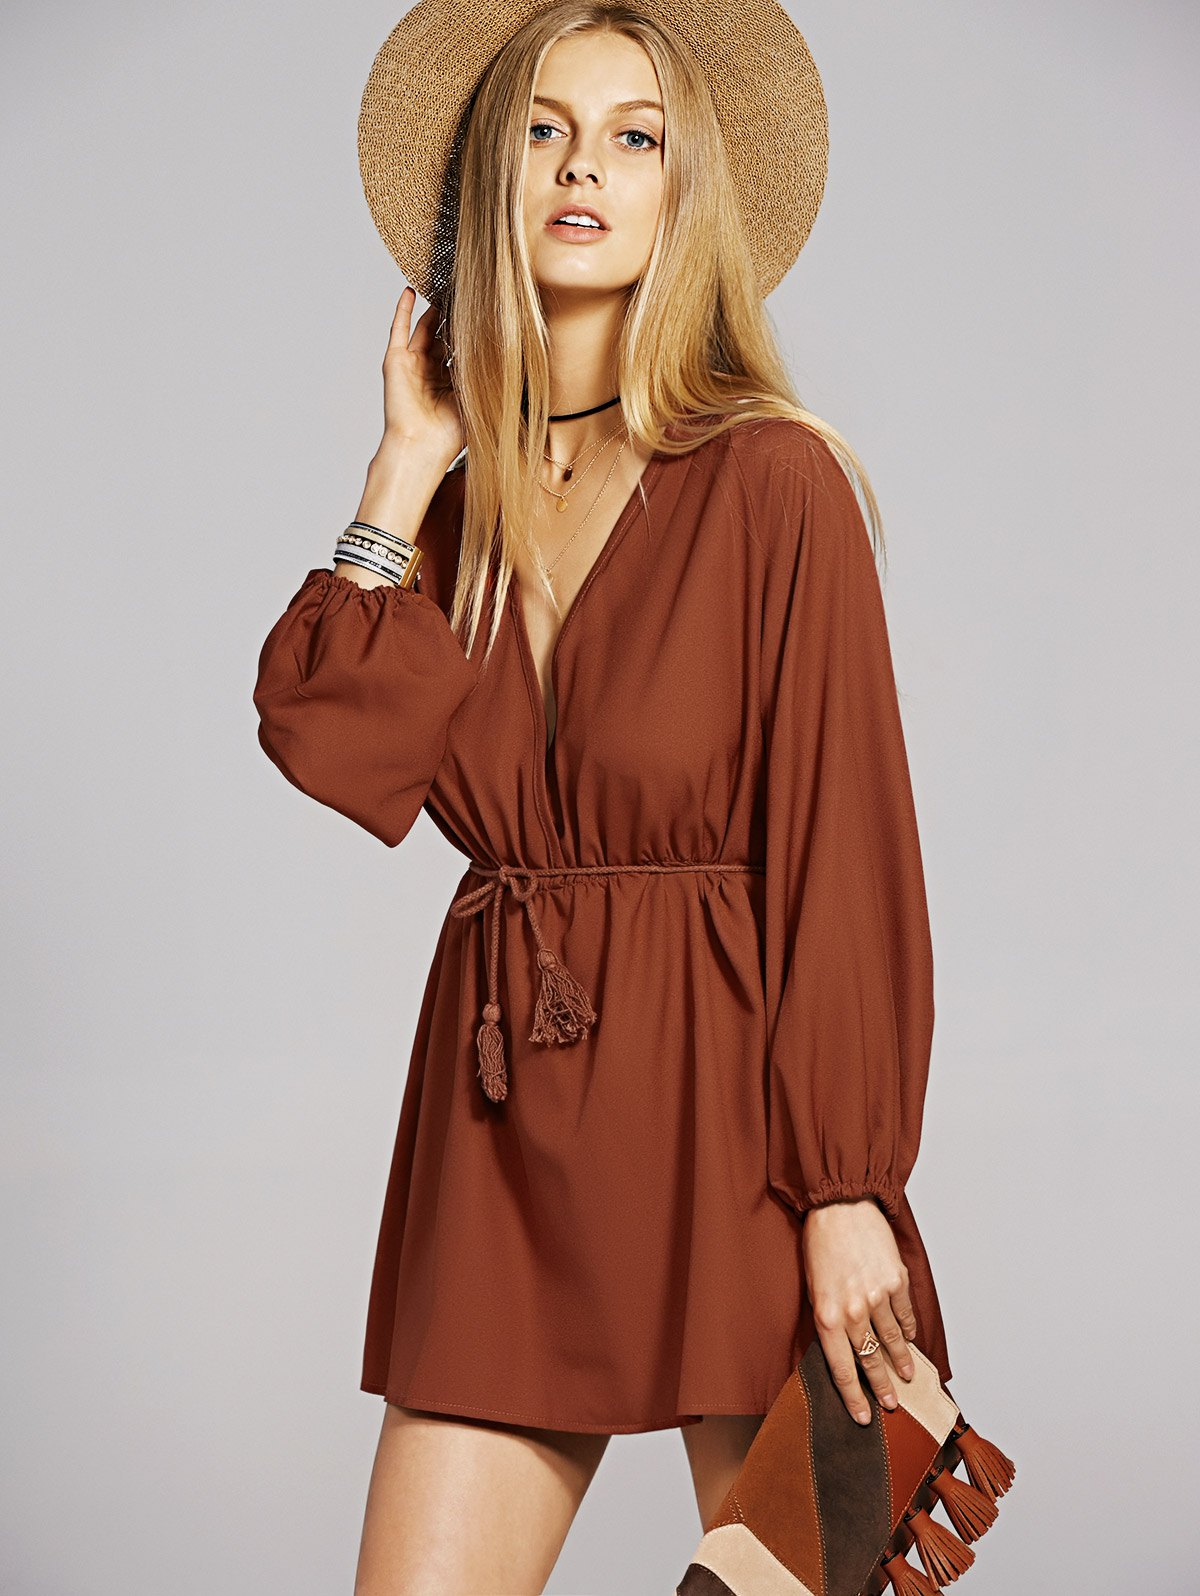 Bohemian Plunging Neck Long Sleeve A-Line Dress For Women